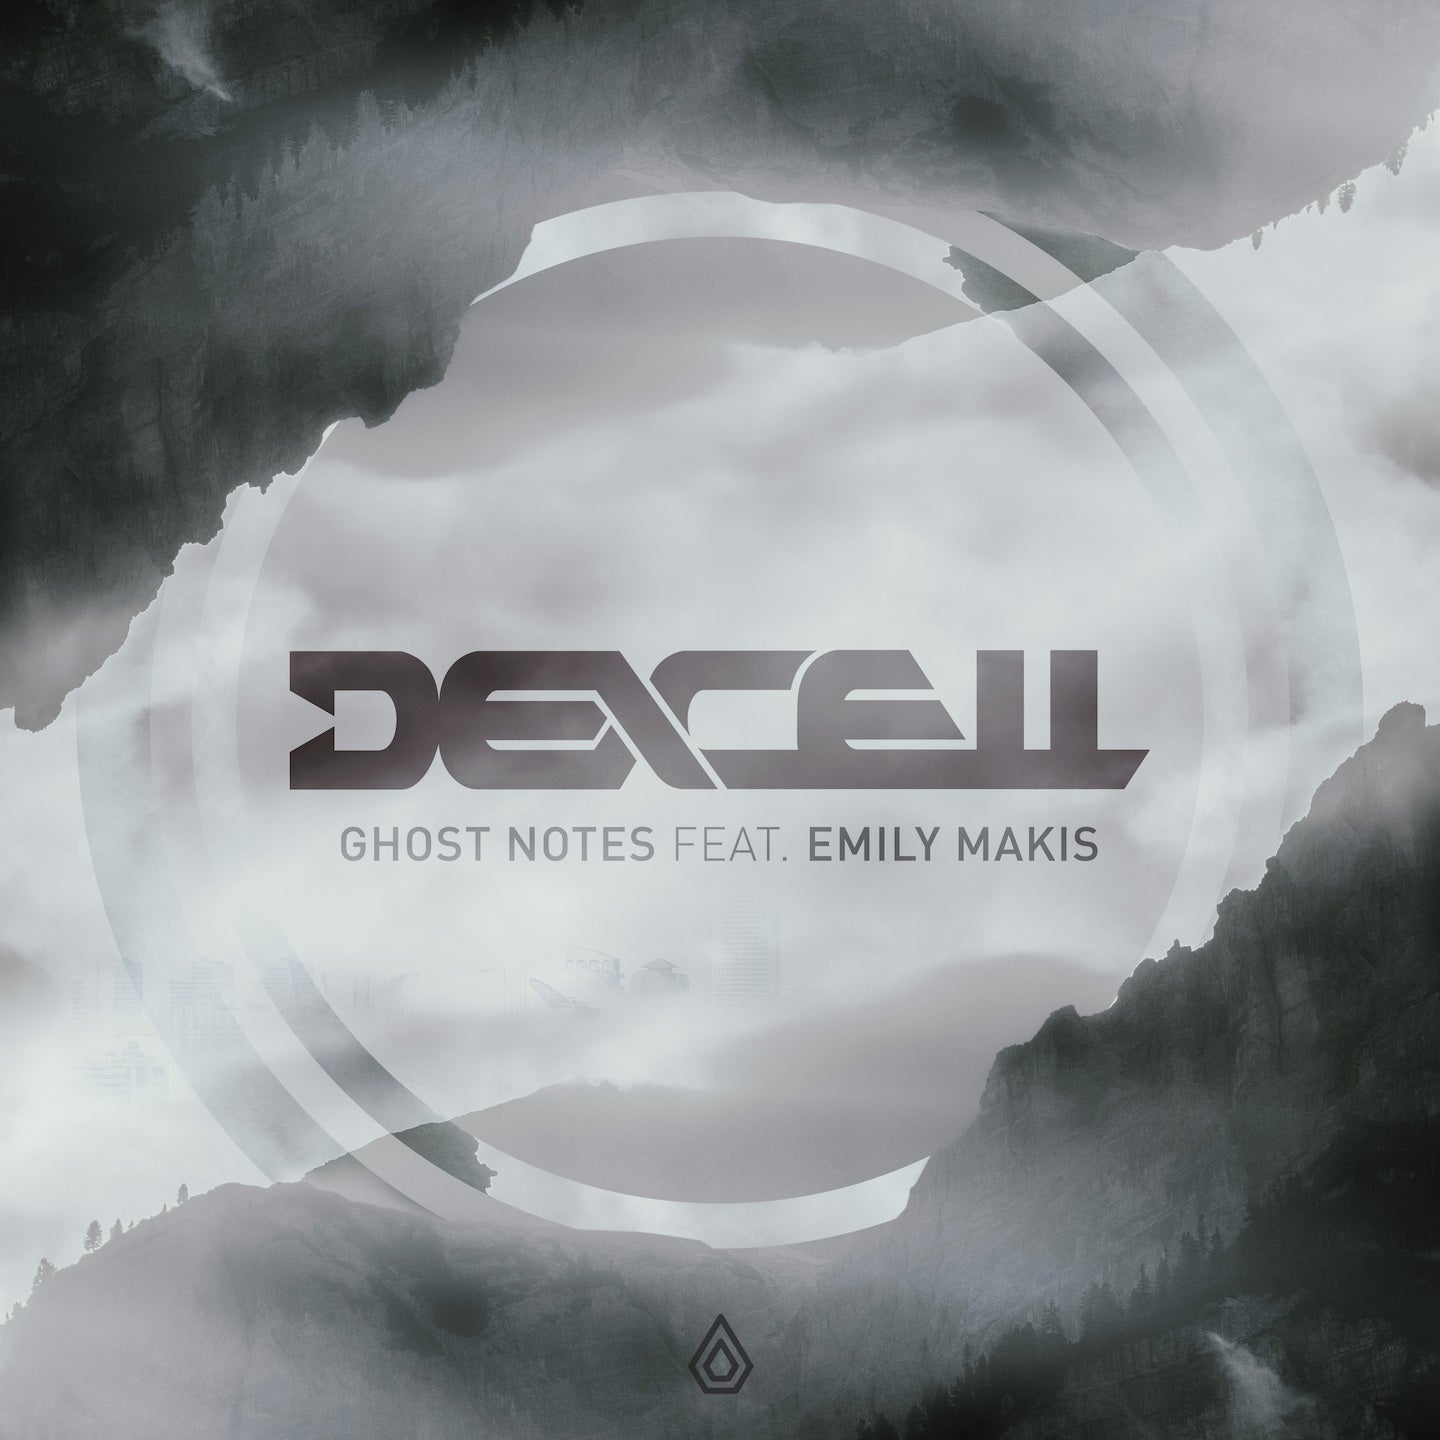 Dexcell - Ghost Notes - Download